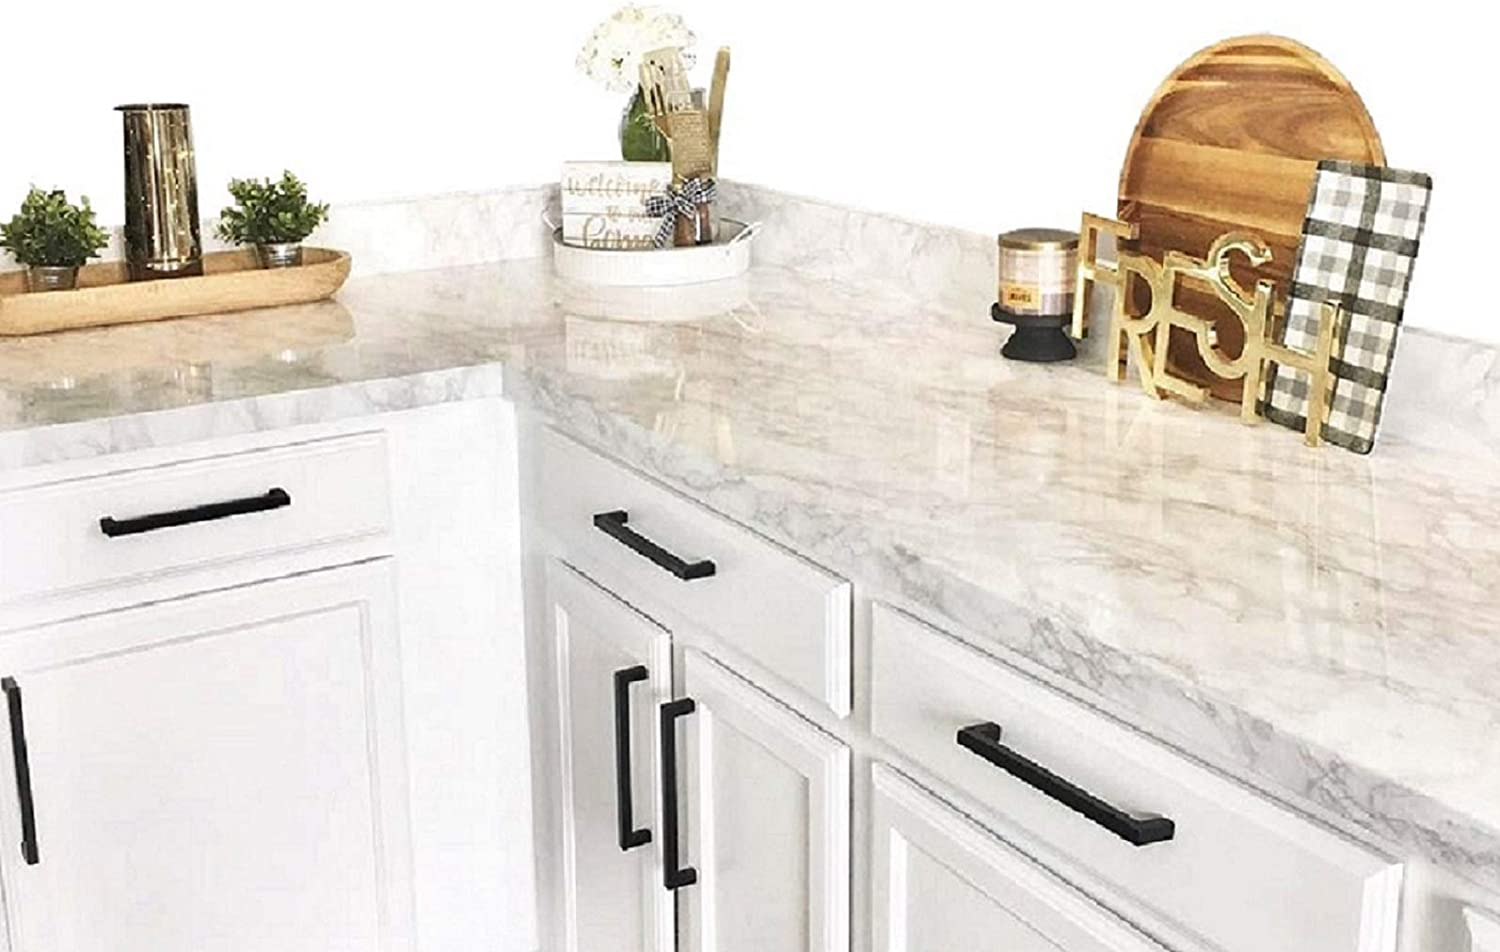 Countertop Transformation Marble White Grey Faux Marble Film 3' W x 6'L Why Paint. Just Peel and Stick.